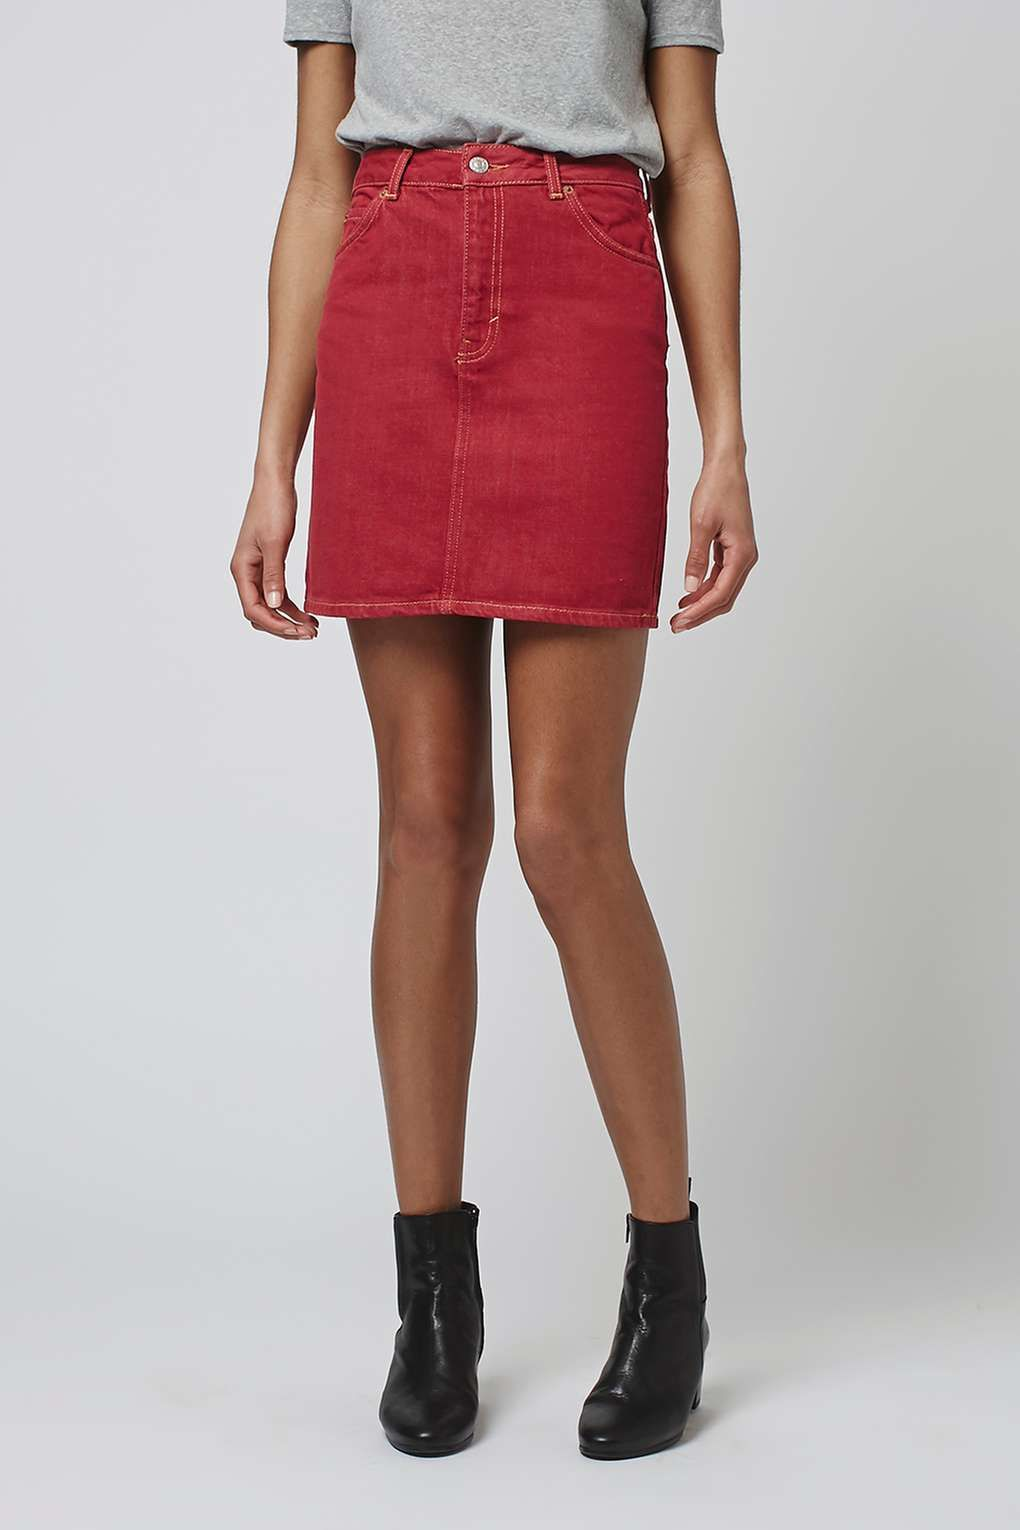 MOTO Red Denim Mini Skirt | Denim mini skirt, Mini skirts and Minis